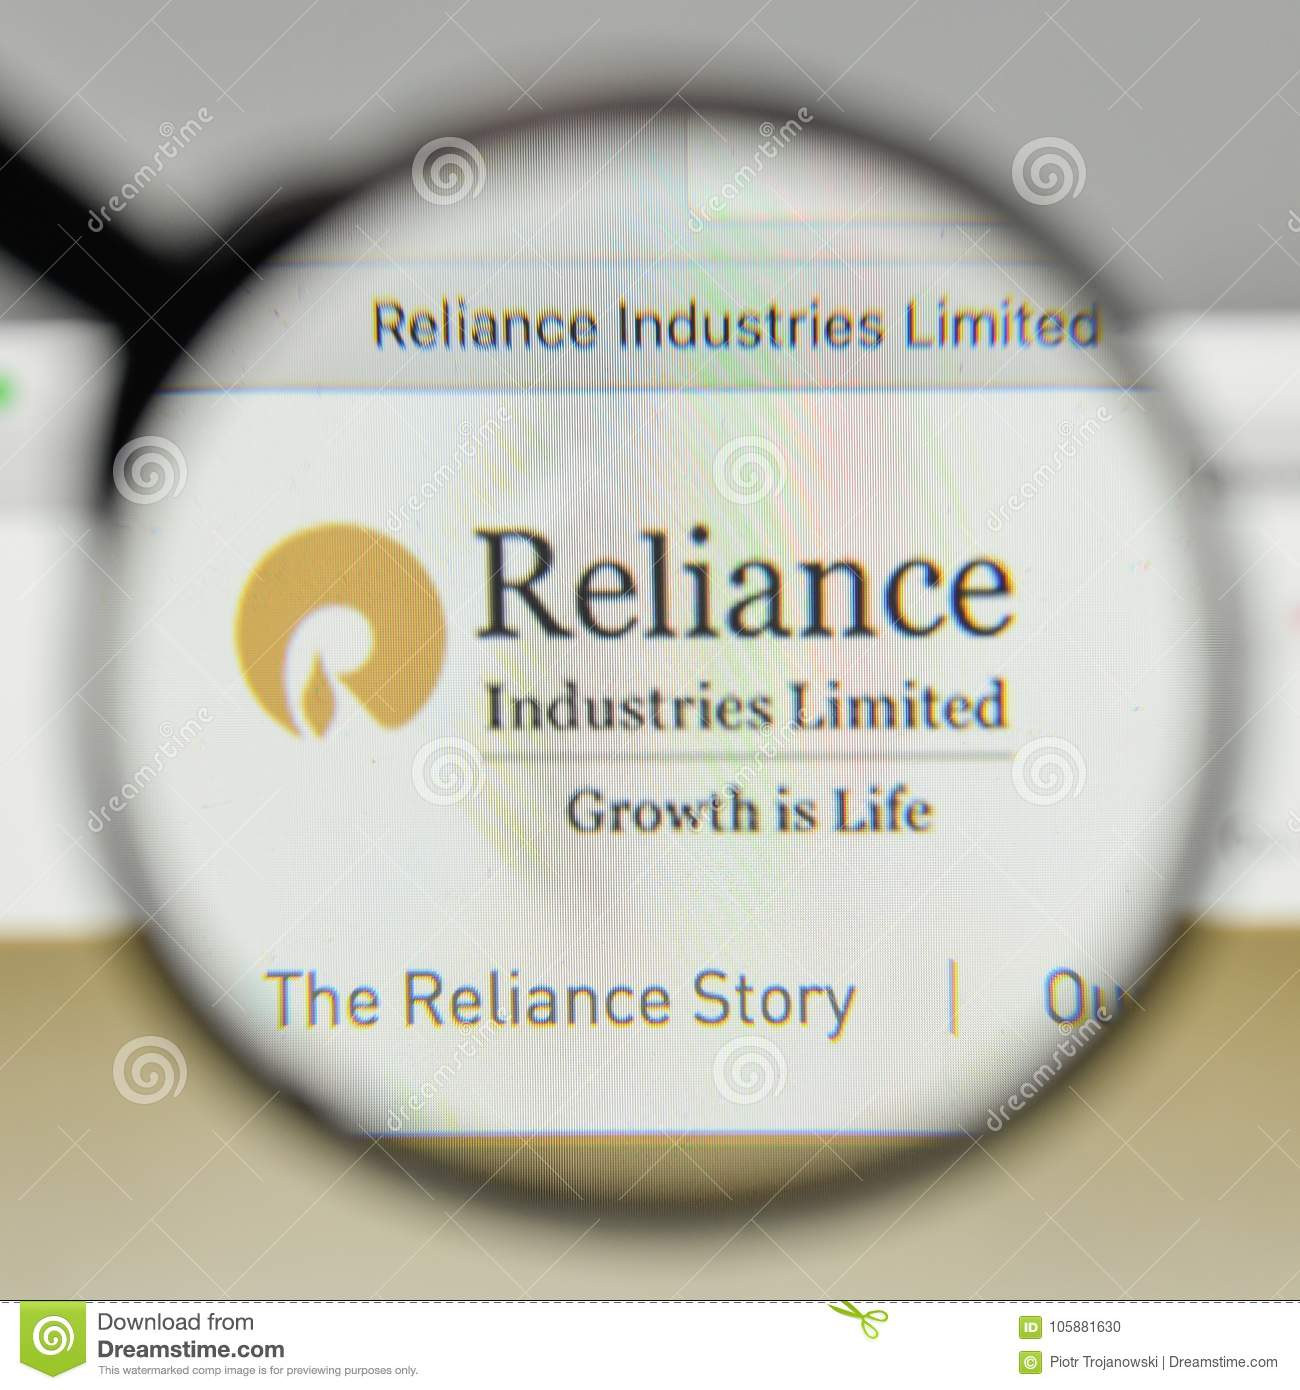 Milaan, Italië - November 1, 2017: Reliance Industries-embleem op